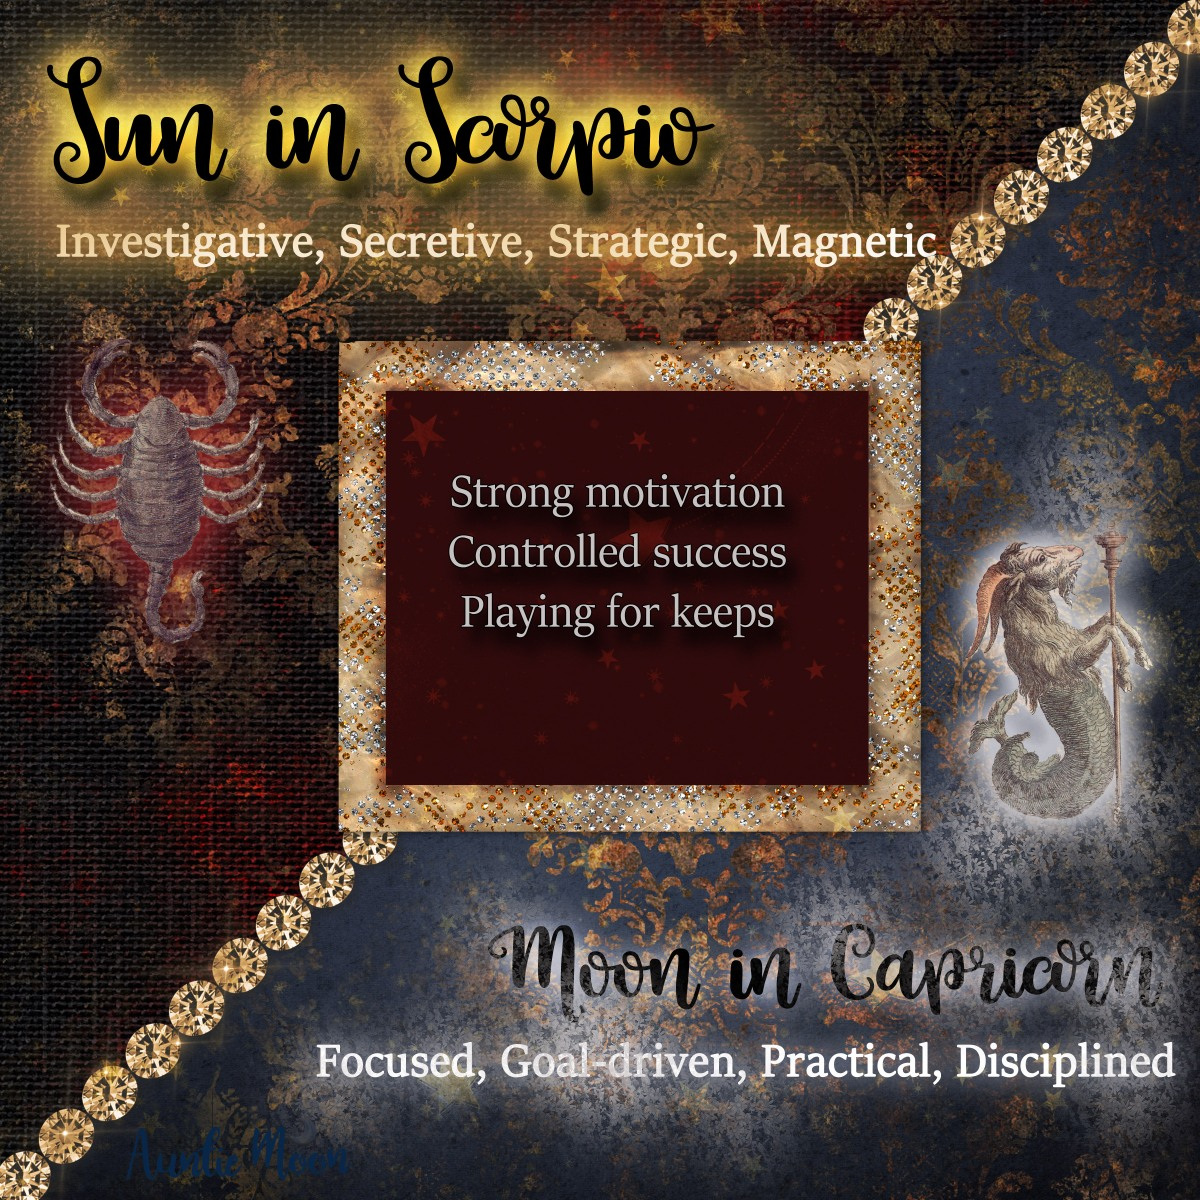 Sun in Scorpio ~ Moon in Capricorn